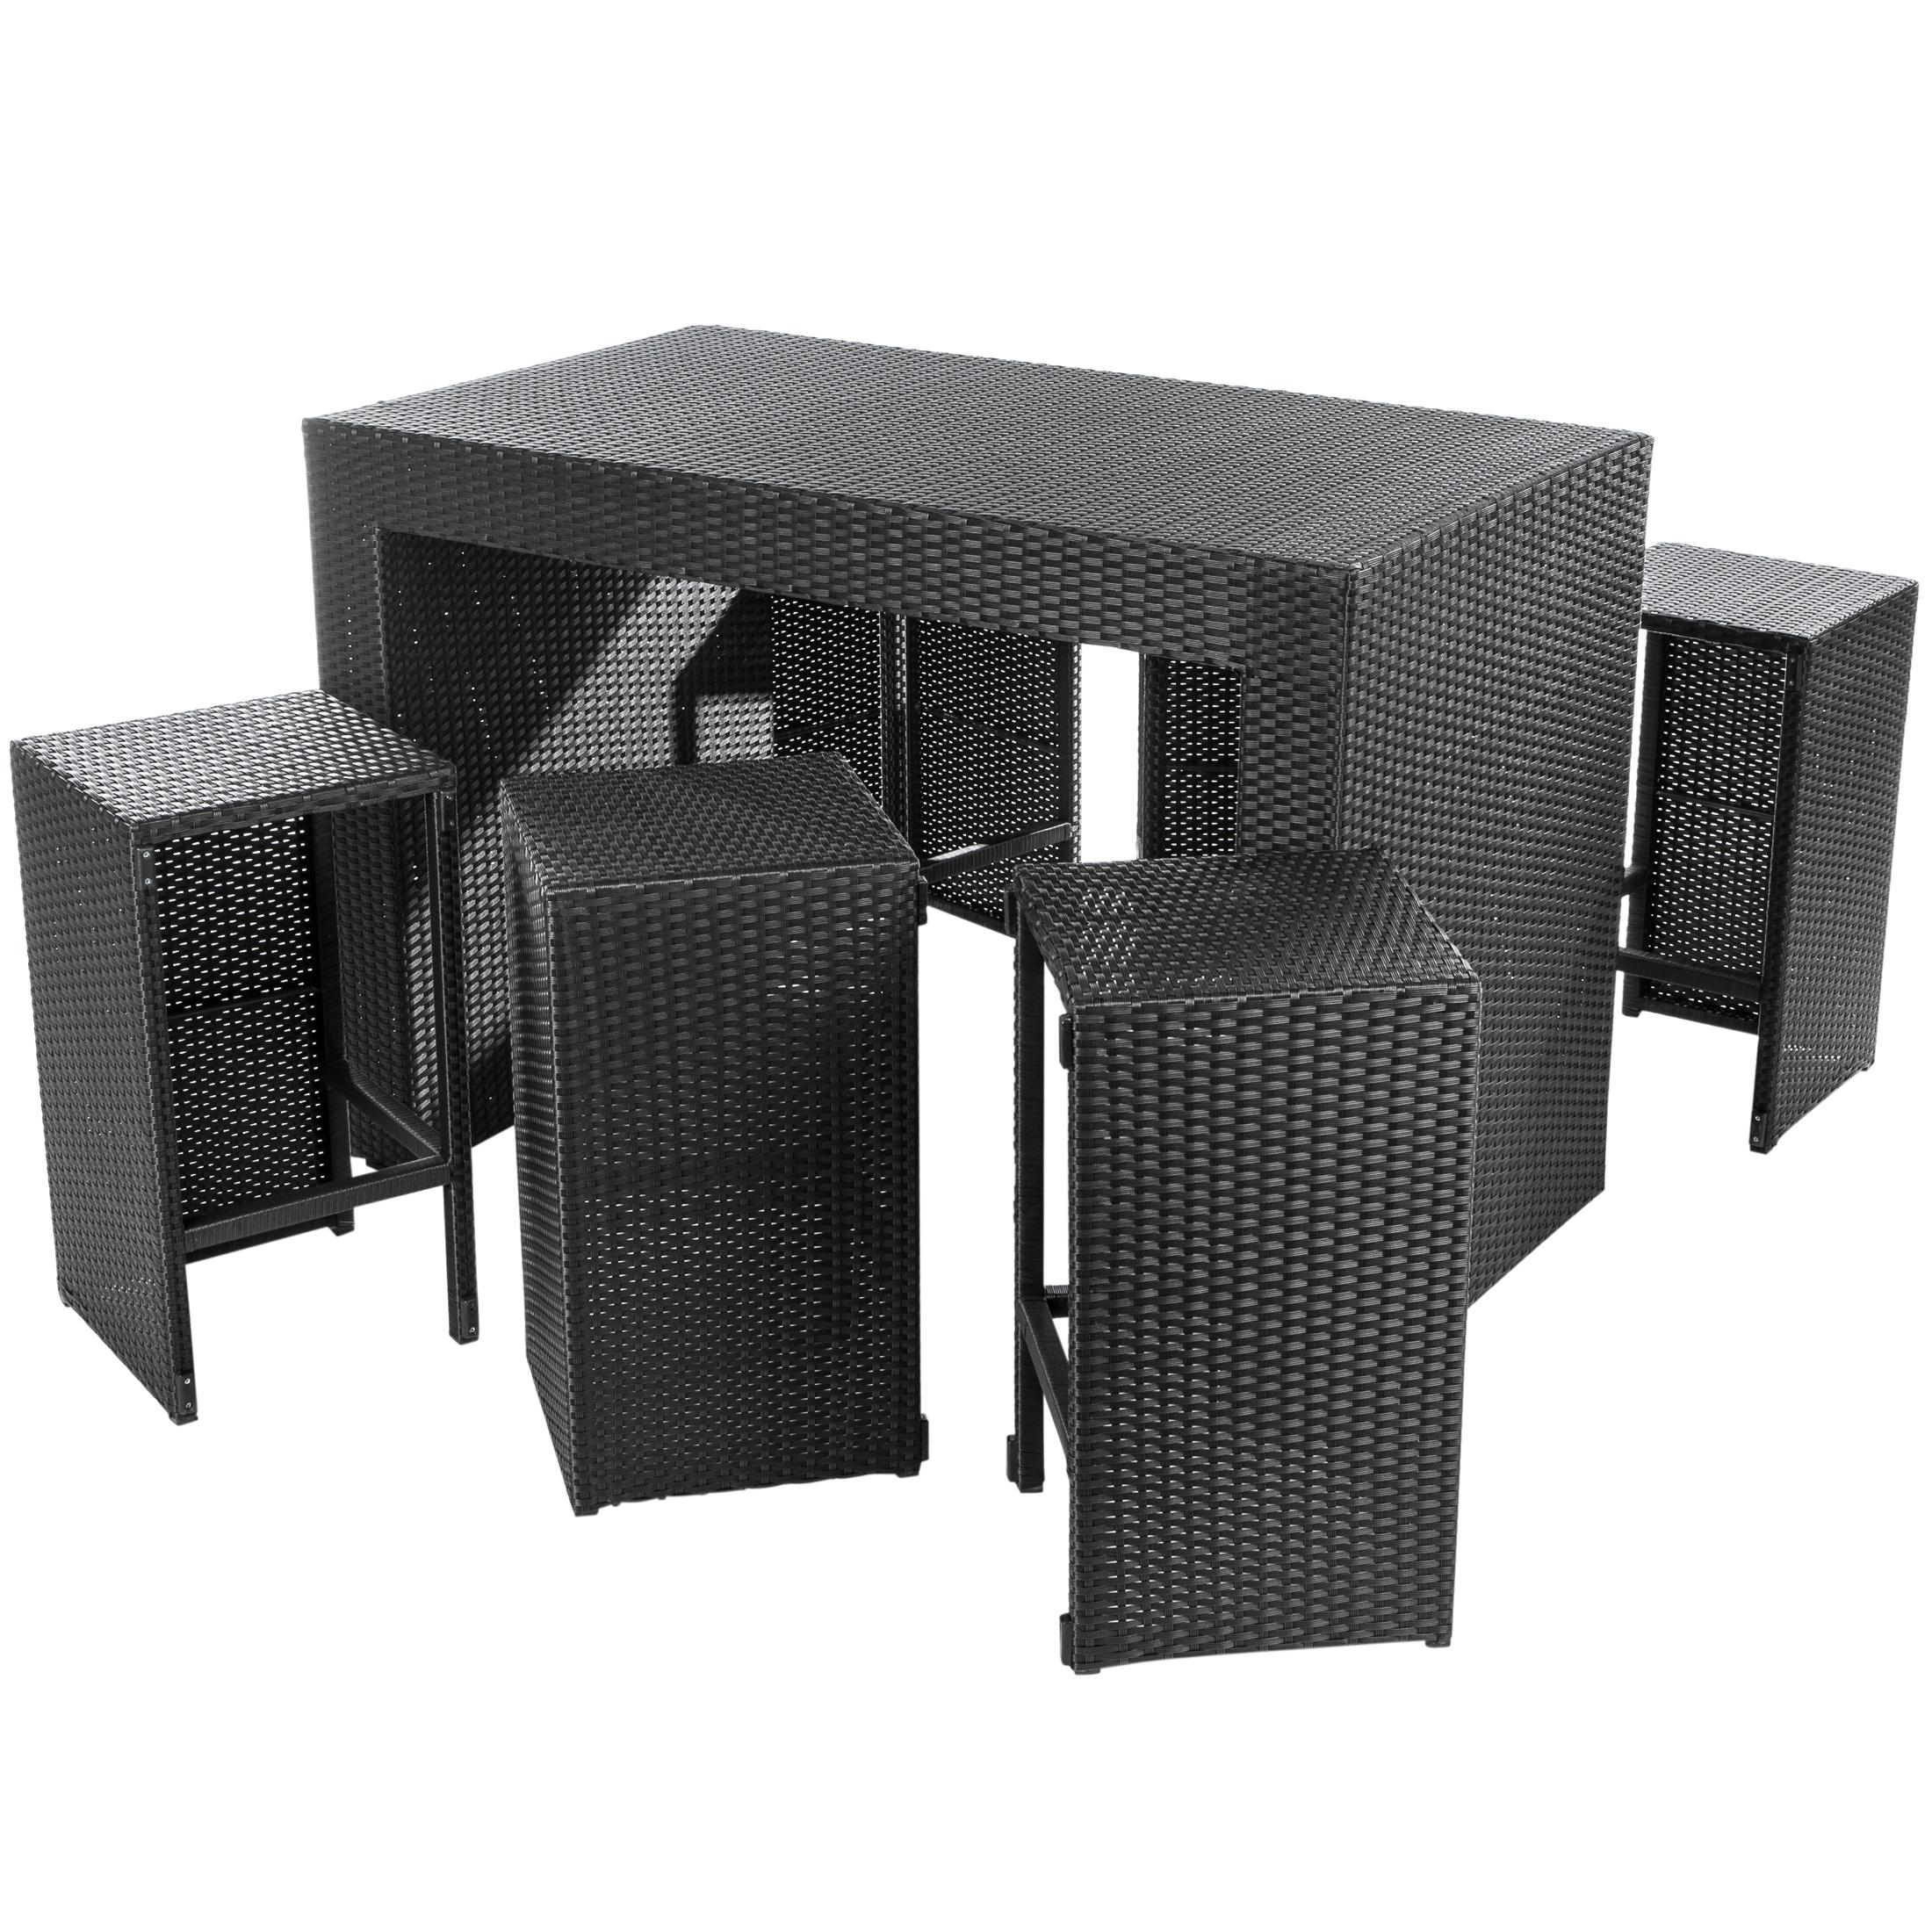 ultranatura poly rattan 2in1 bar and lounge set palma series incl cushioning. Black Bedroom Furniture Sets. Home Design Ideas